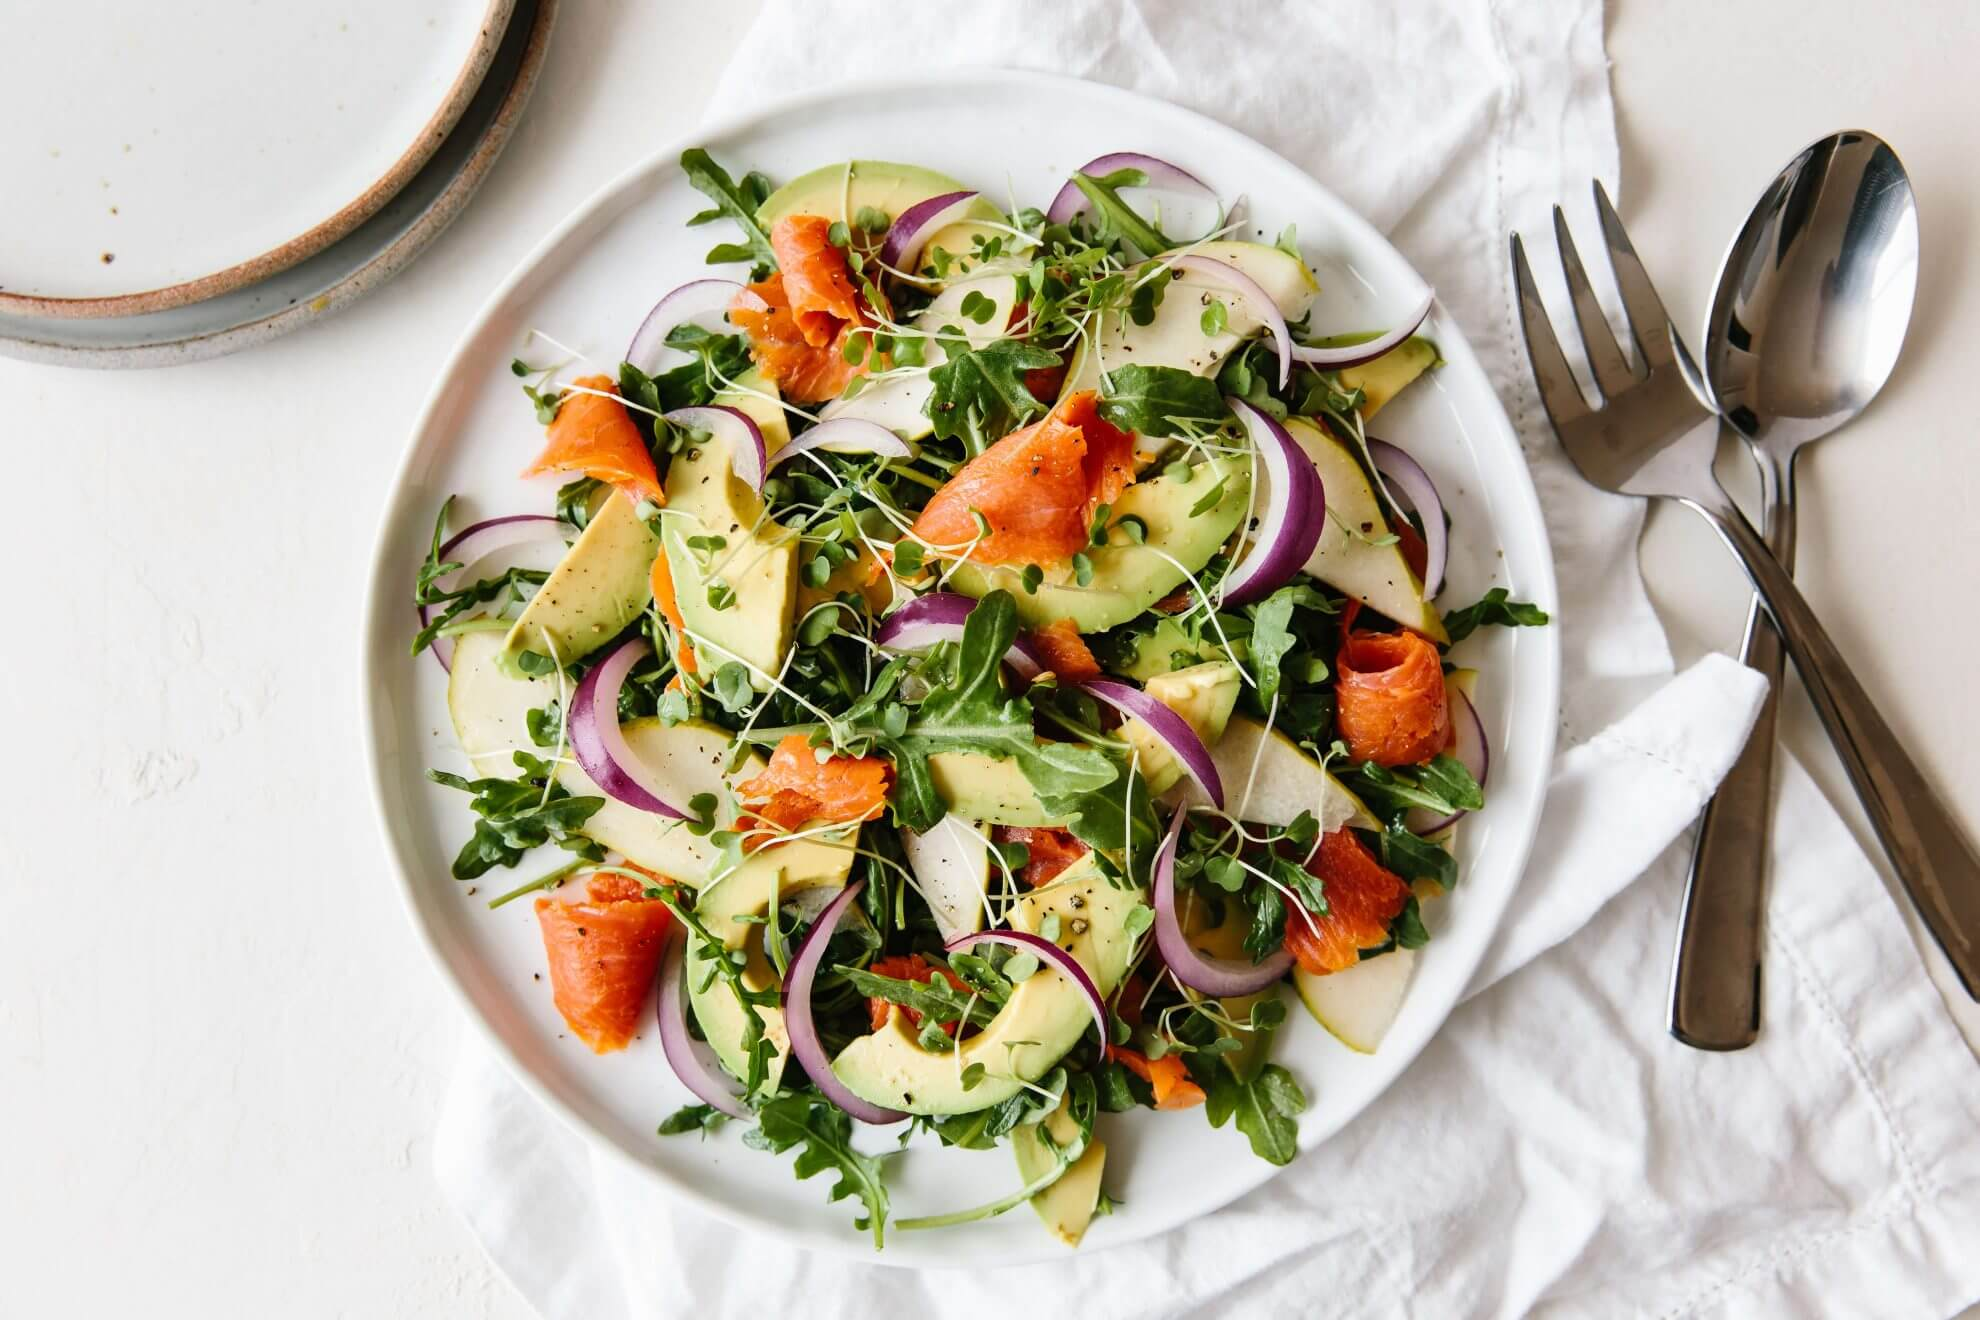 Smoked Salmon Avocado And Arugula Salad Downshiftology